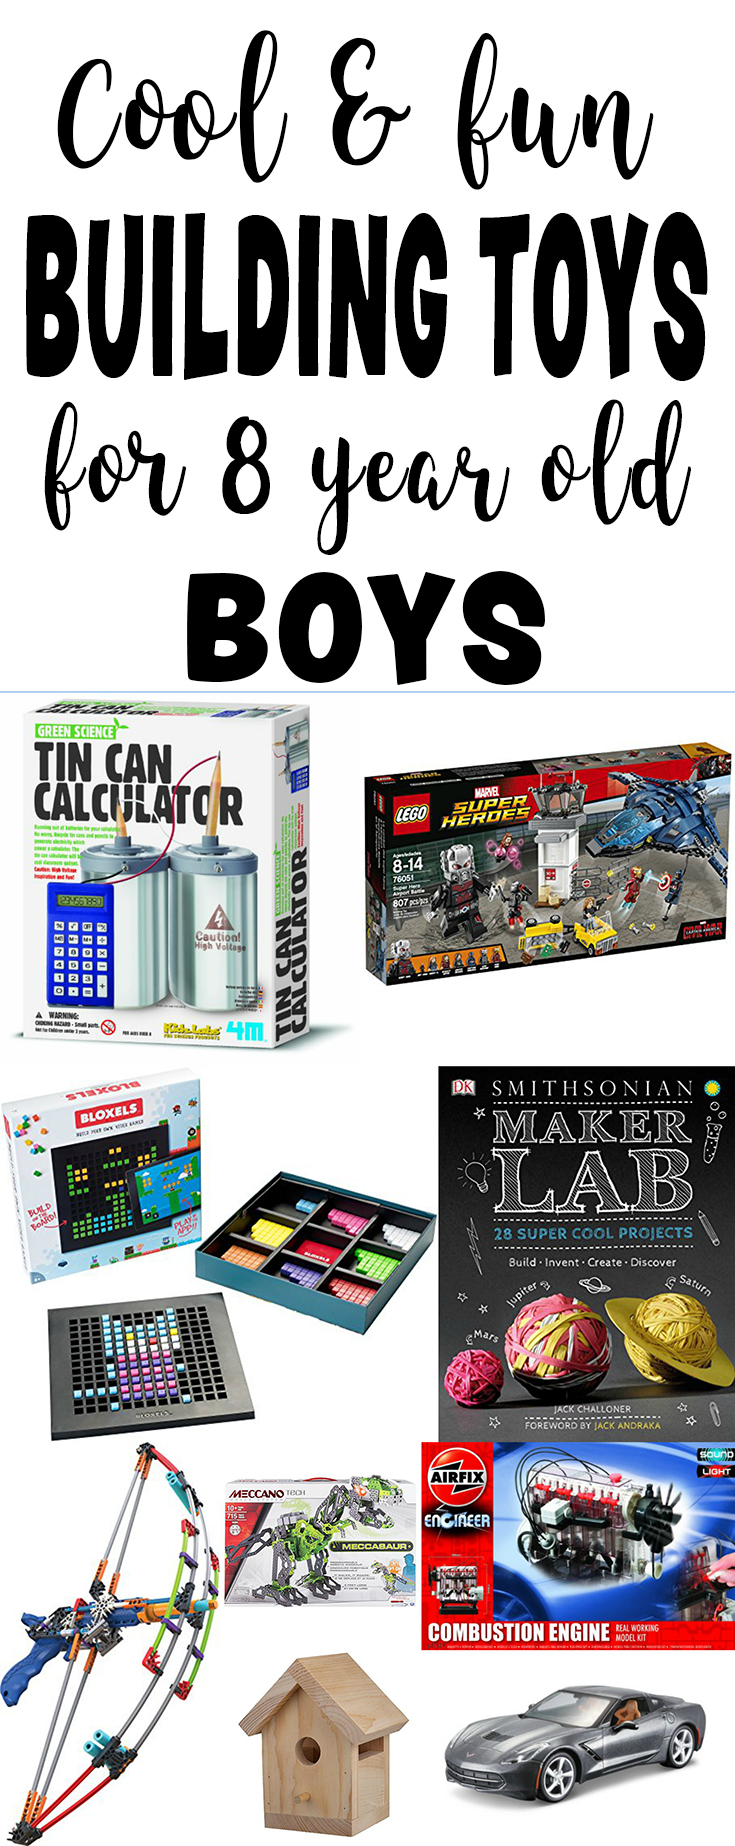 Gifts For 8 Year Old Boys - Cool Things To Build